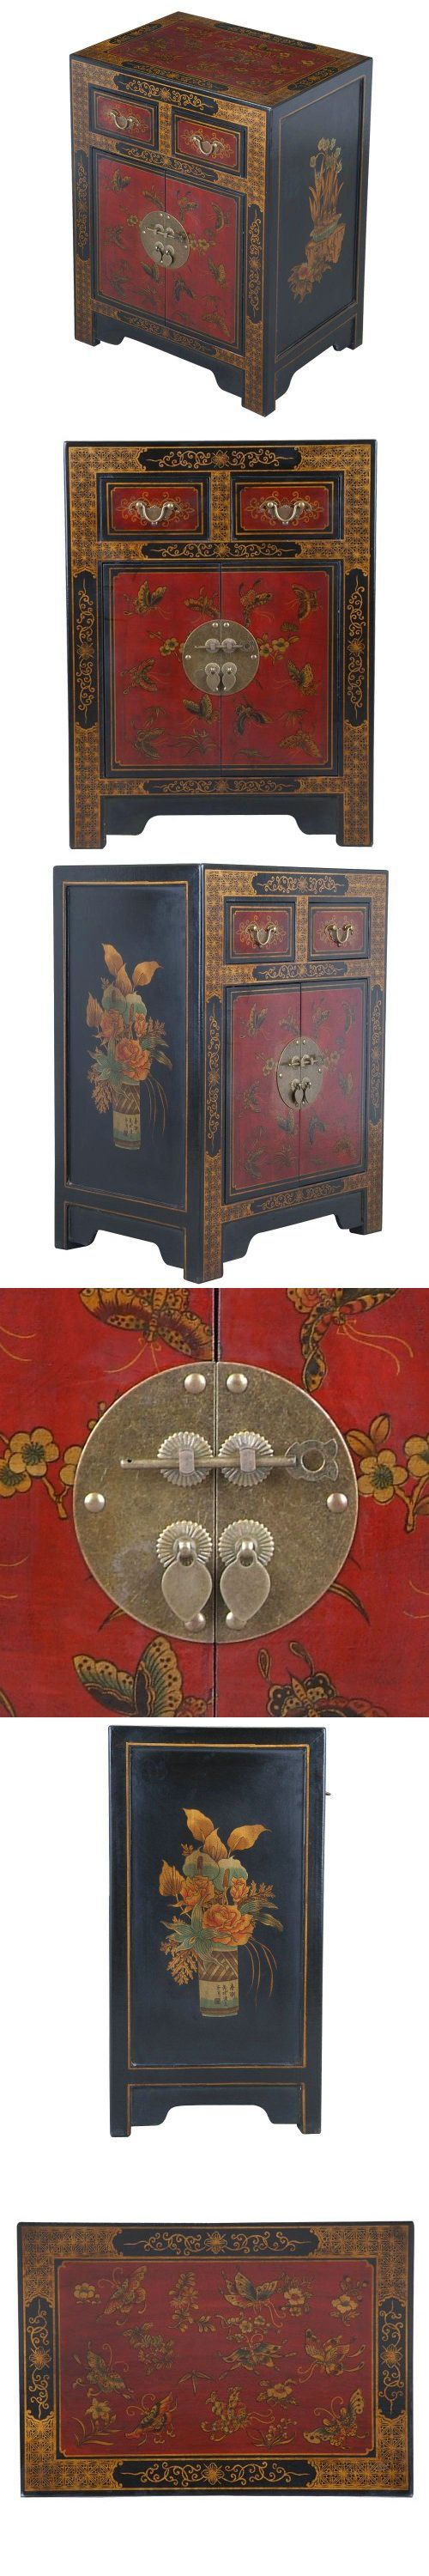 oriental inspired furniture. EXP Handmade Oriental Furniture 27-Inch Antique Style Black Leather End Table With Nature Motifs, A Delectably Detailed Home Accent Piece, This Inspired